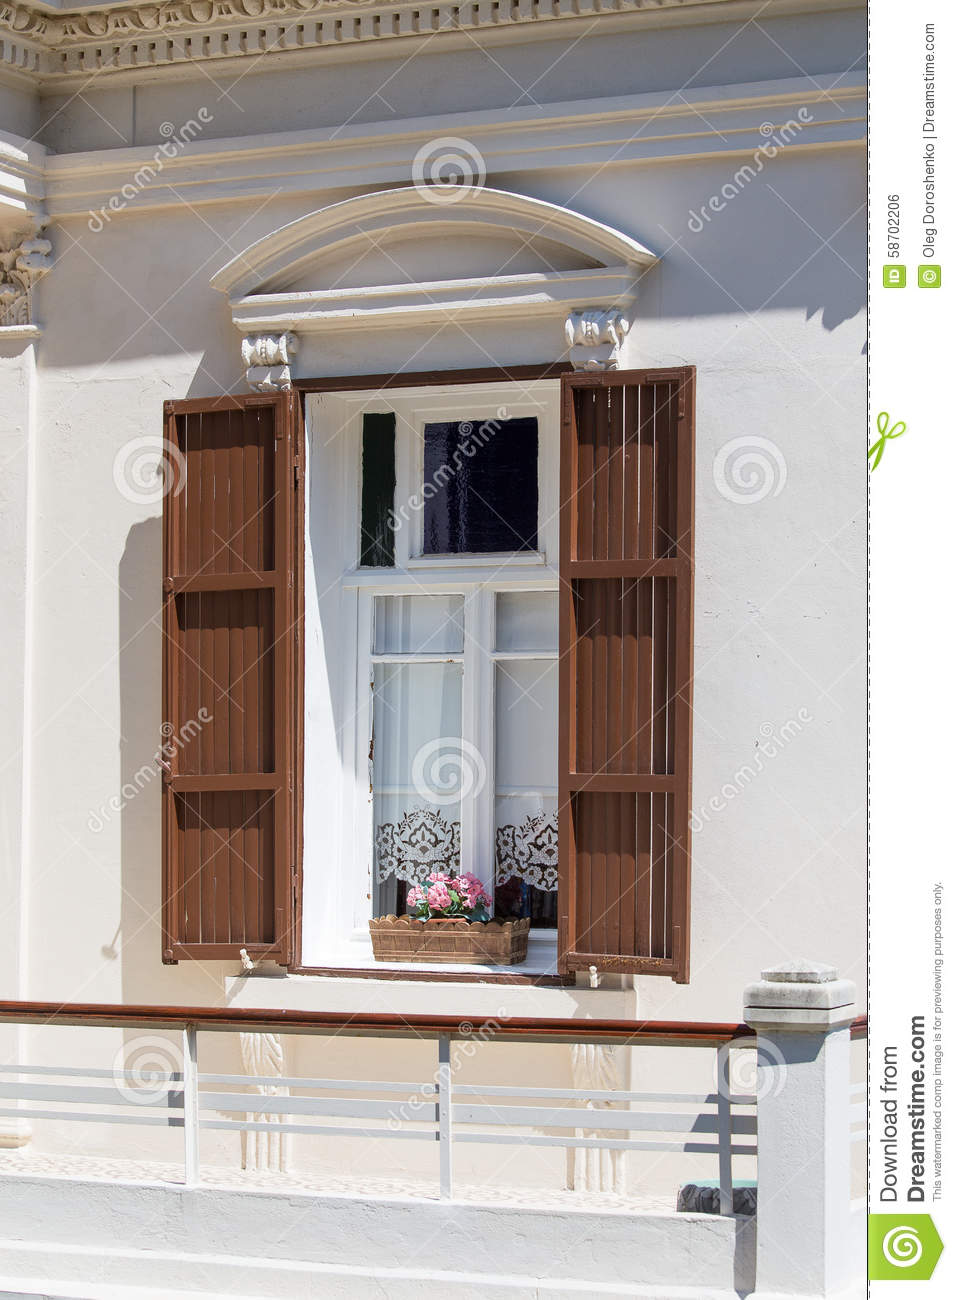 Balcony with balustrade and louvre doors royalty free for Balcony louvres